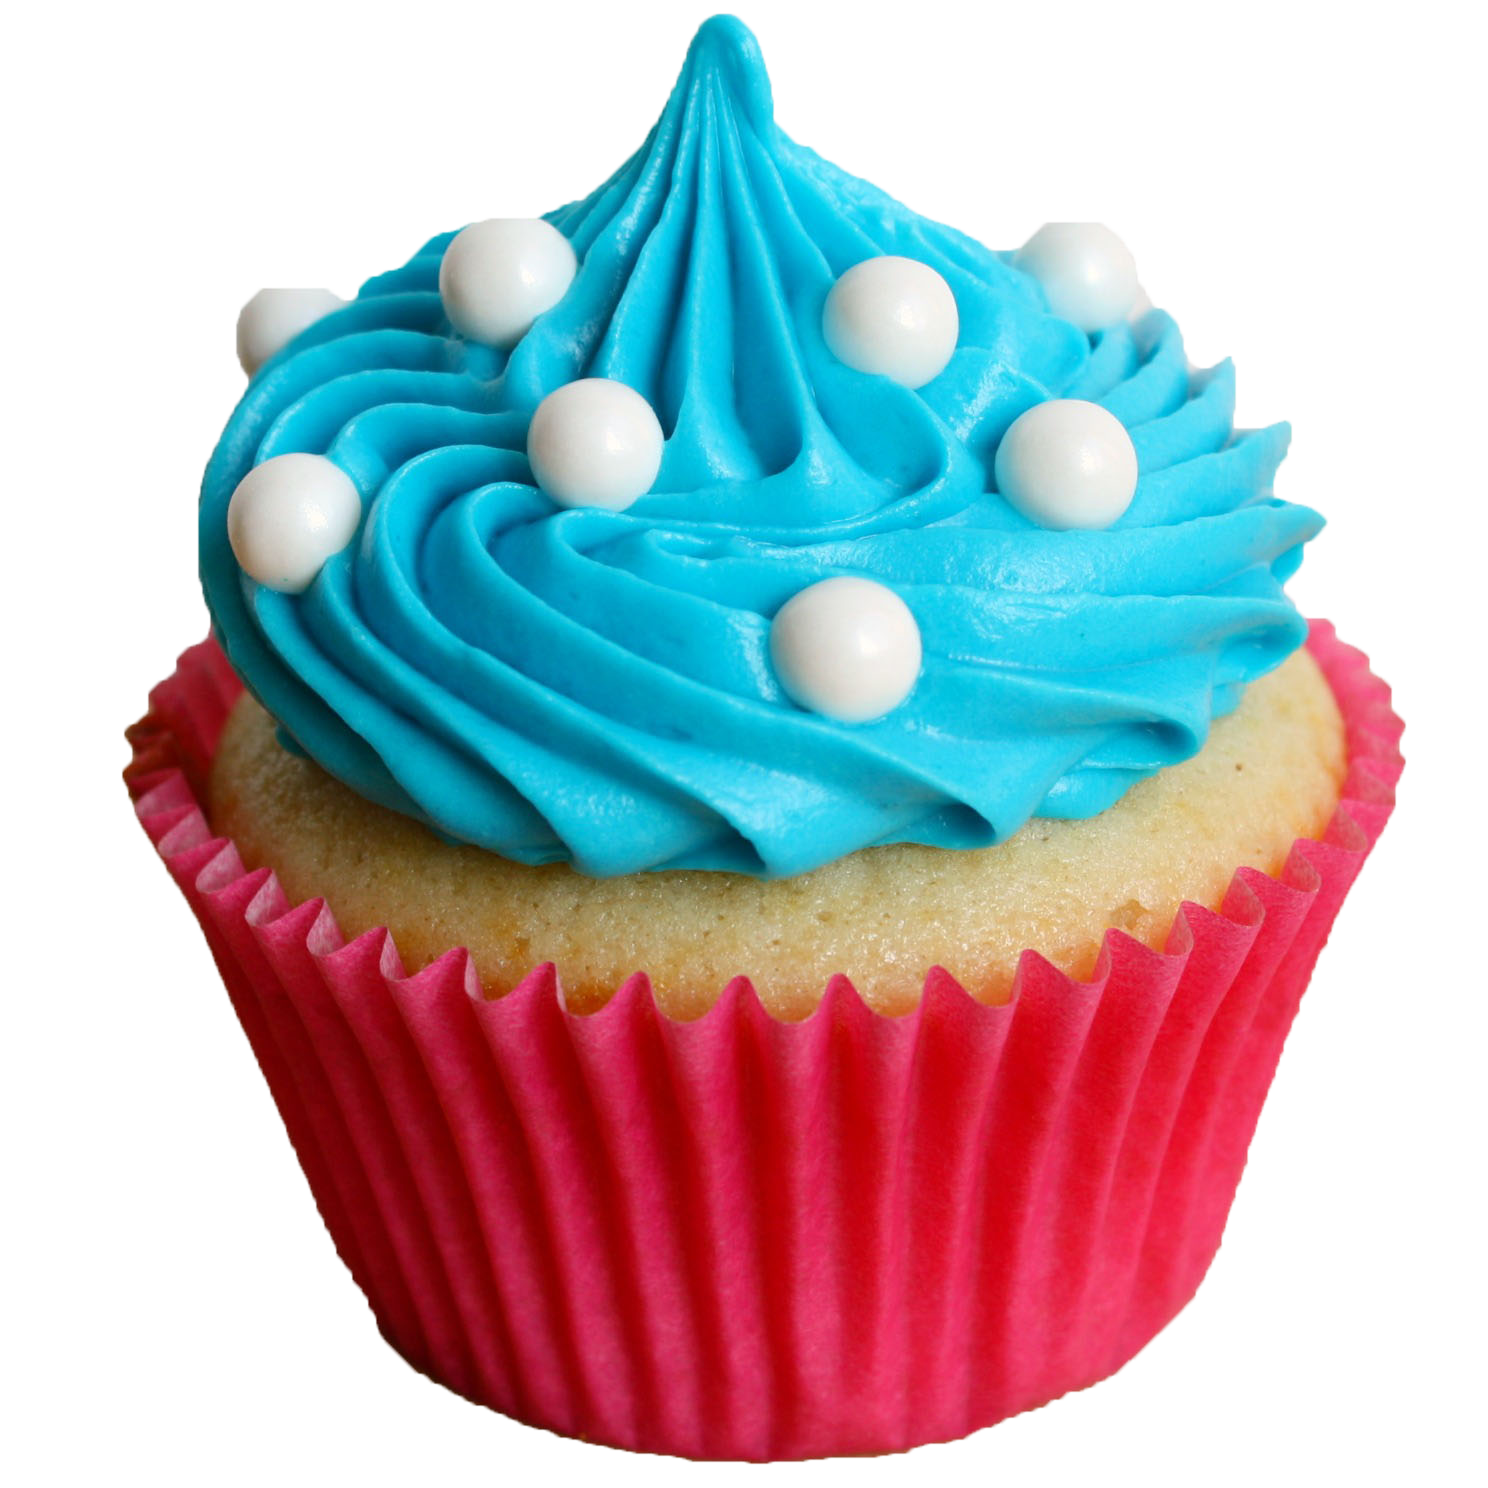 Birthday cup cake png. Transparent pictures free icons